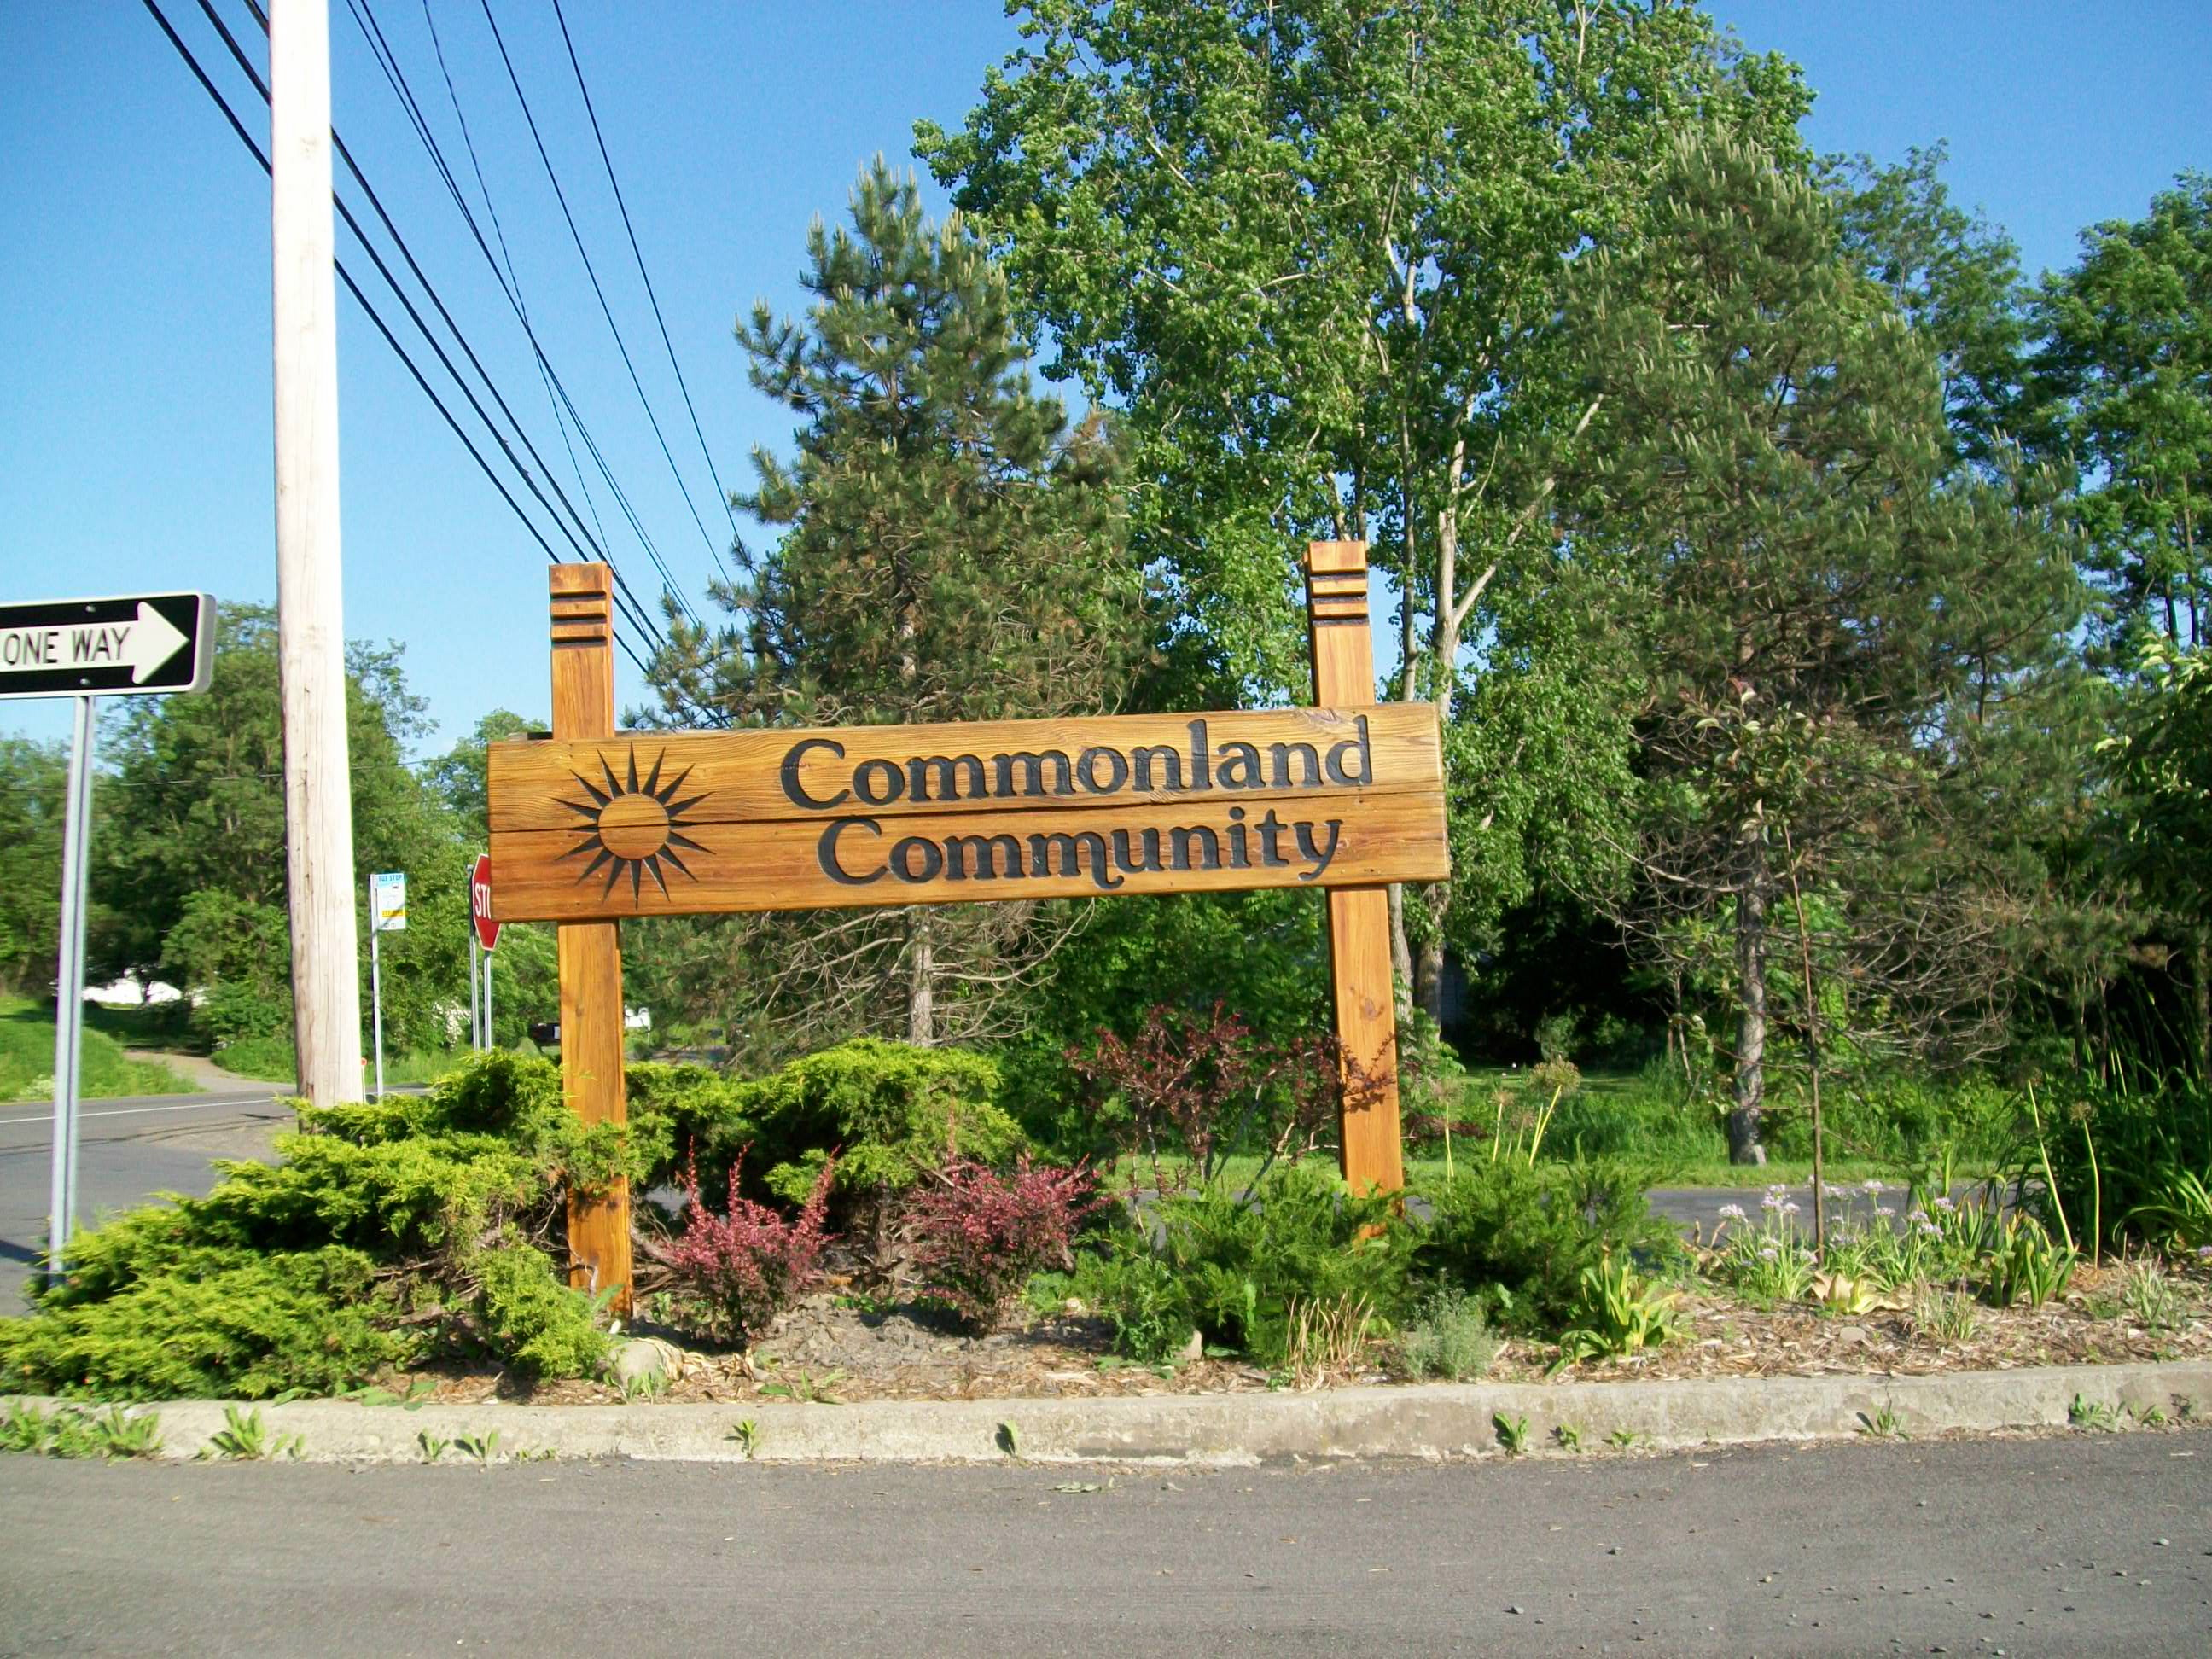 Welcome to Commonland Community